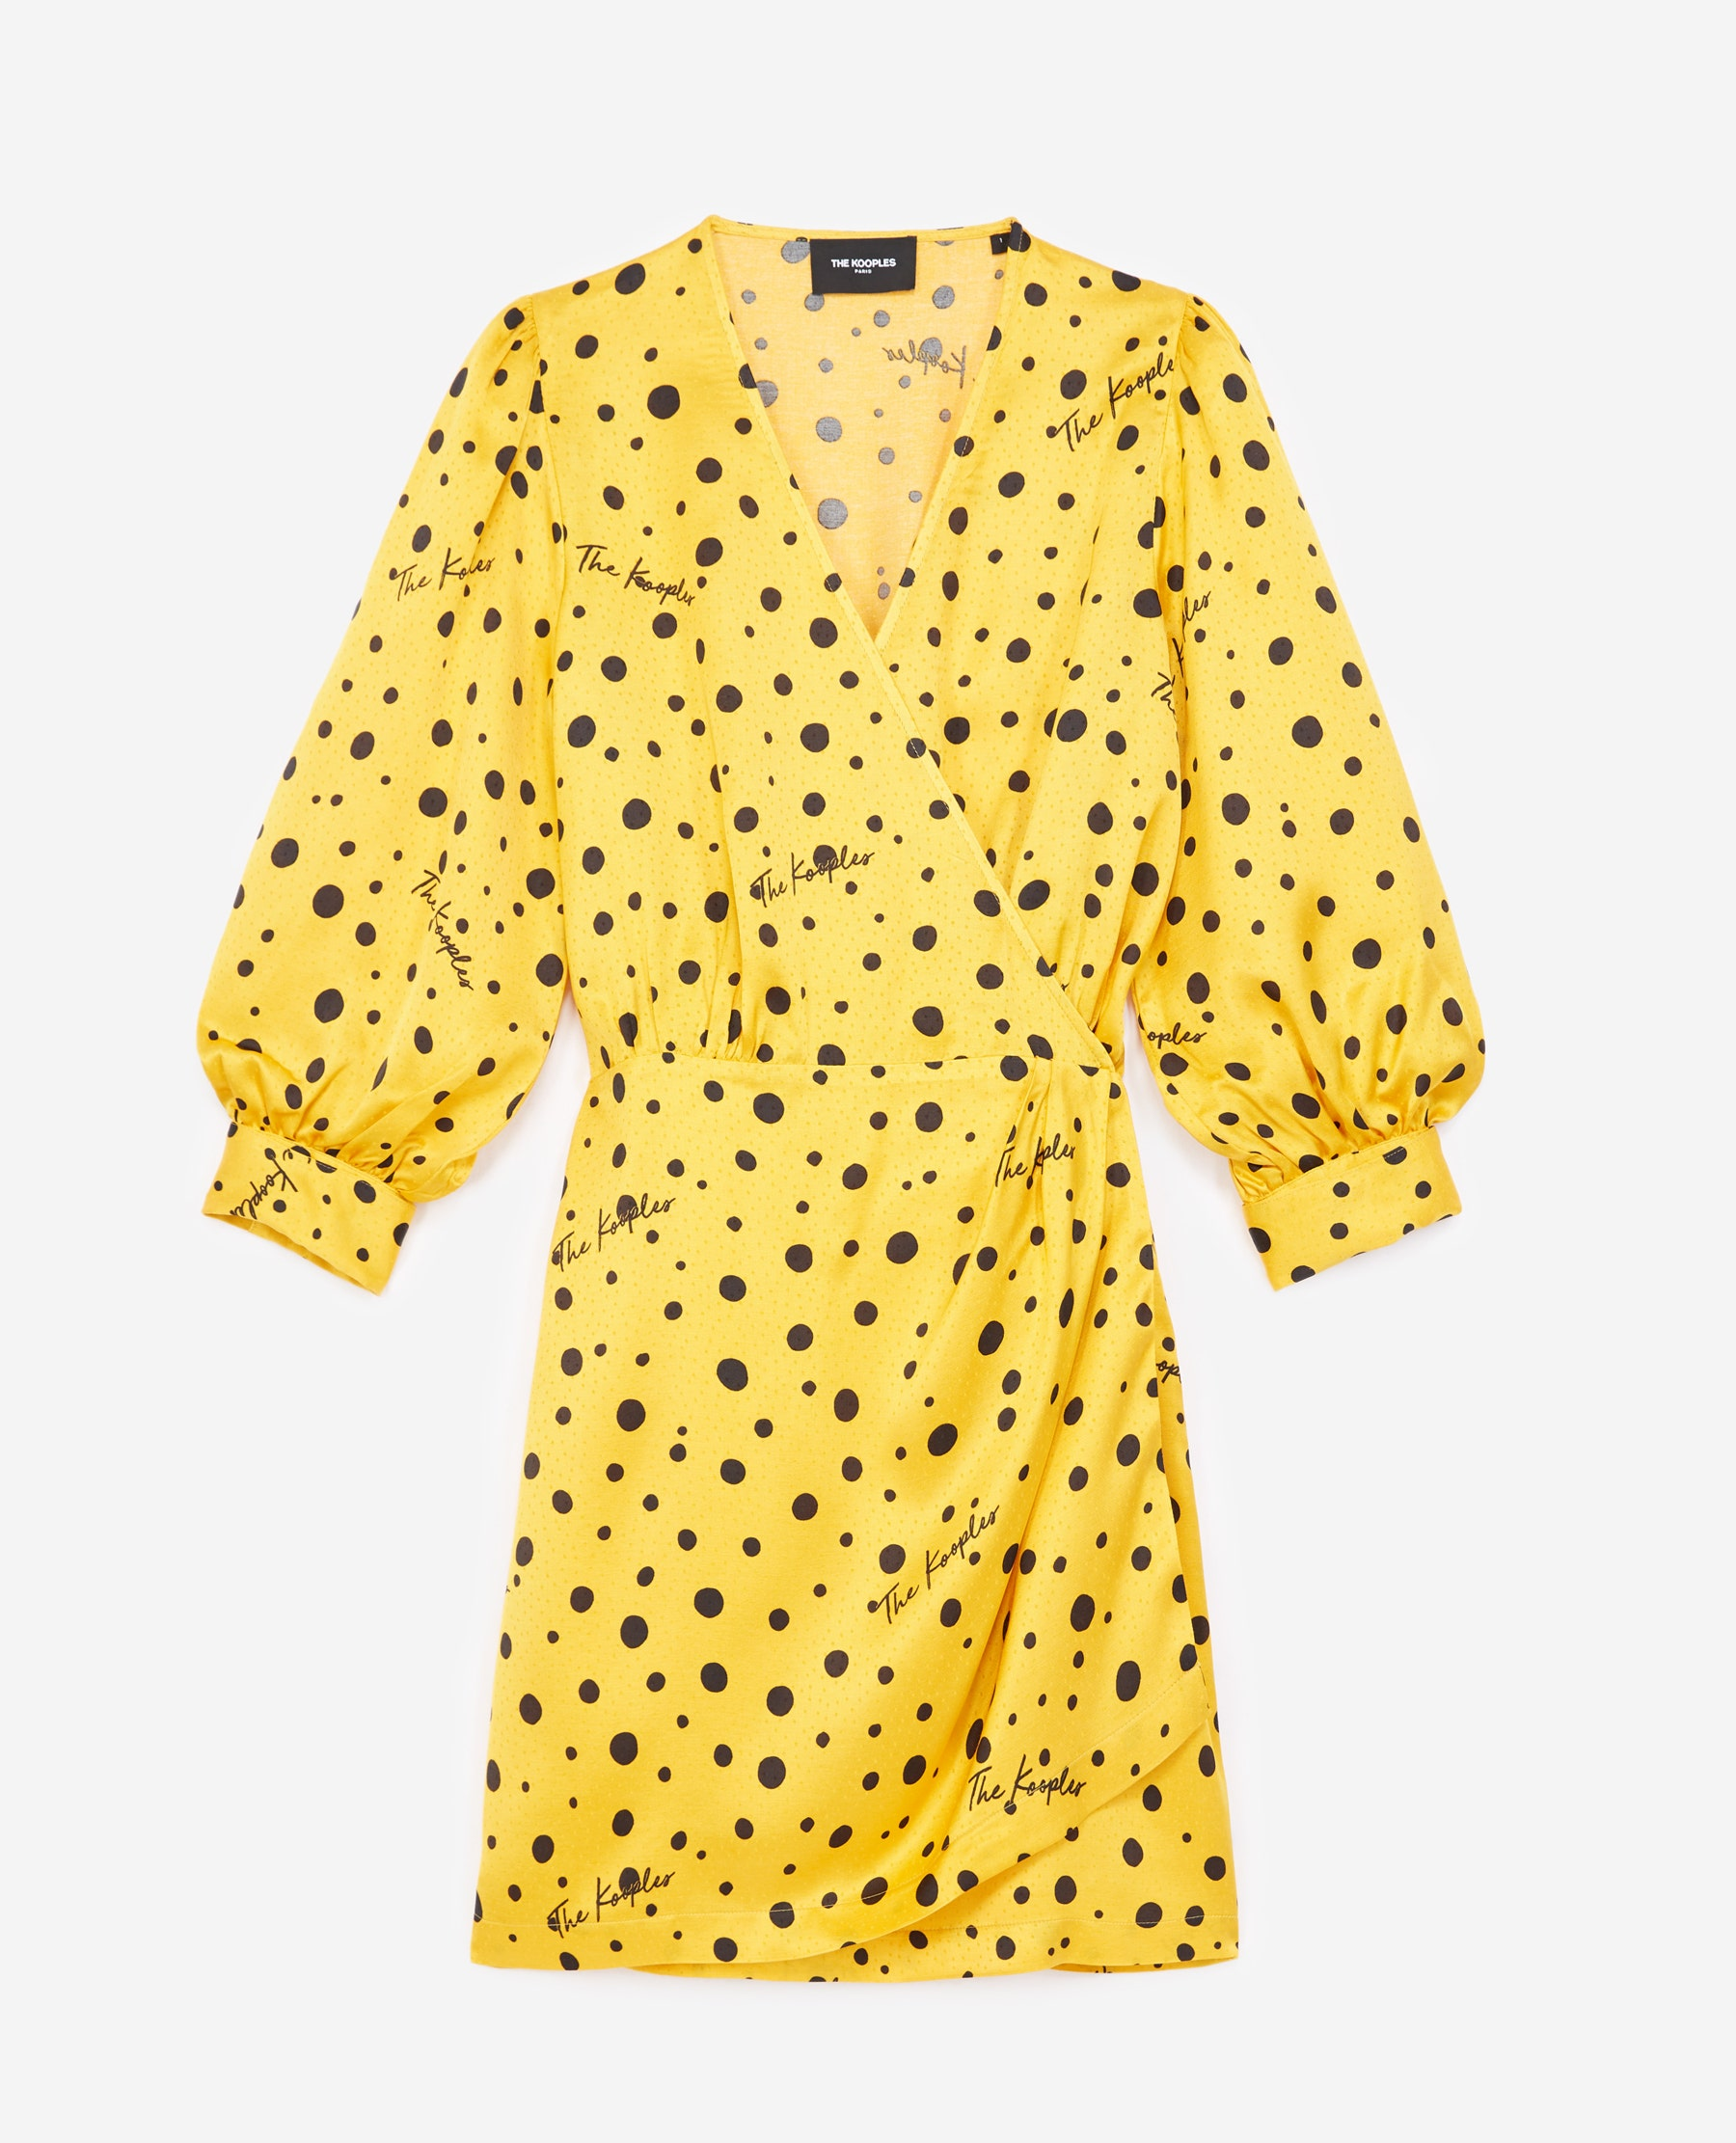 Robe portefeuille jaune à pois - The Kooples - Modalova